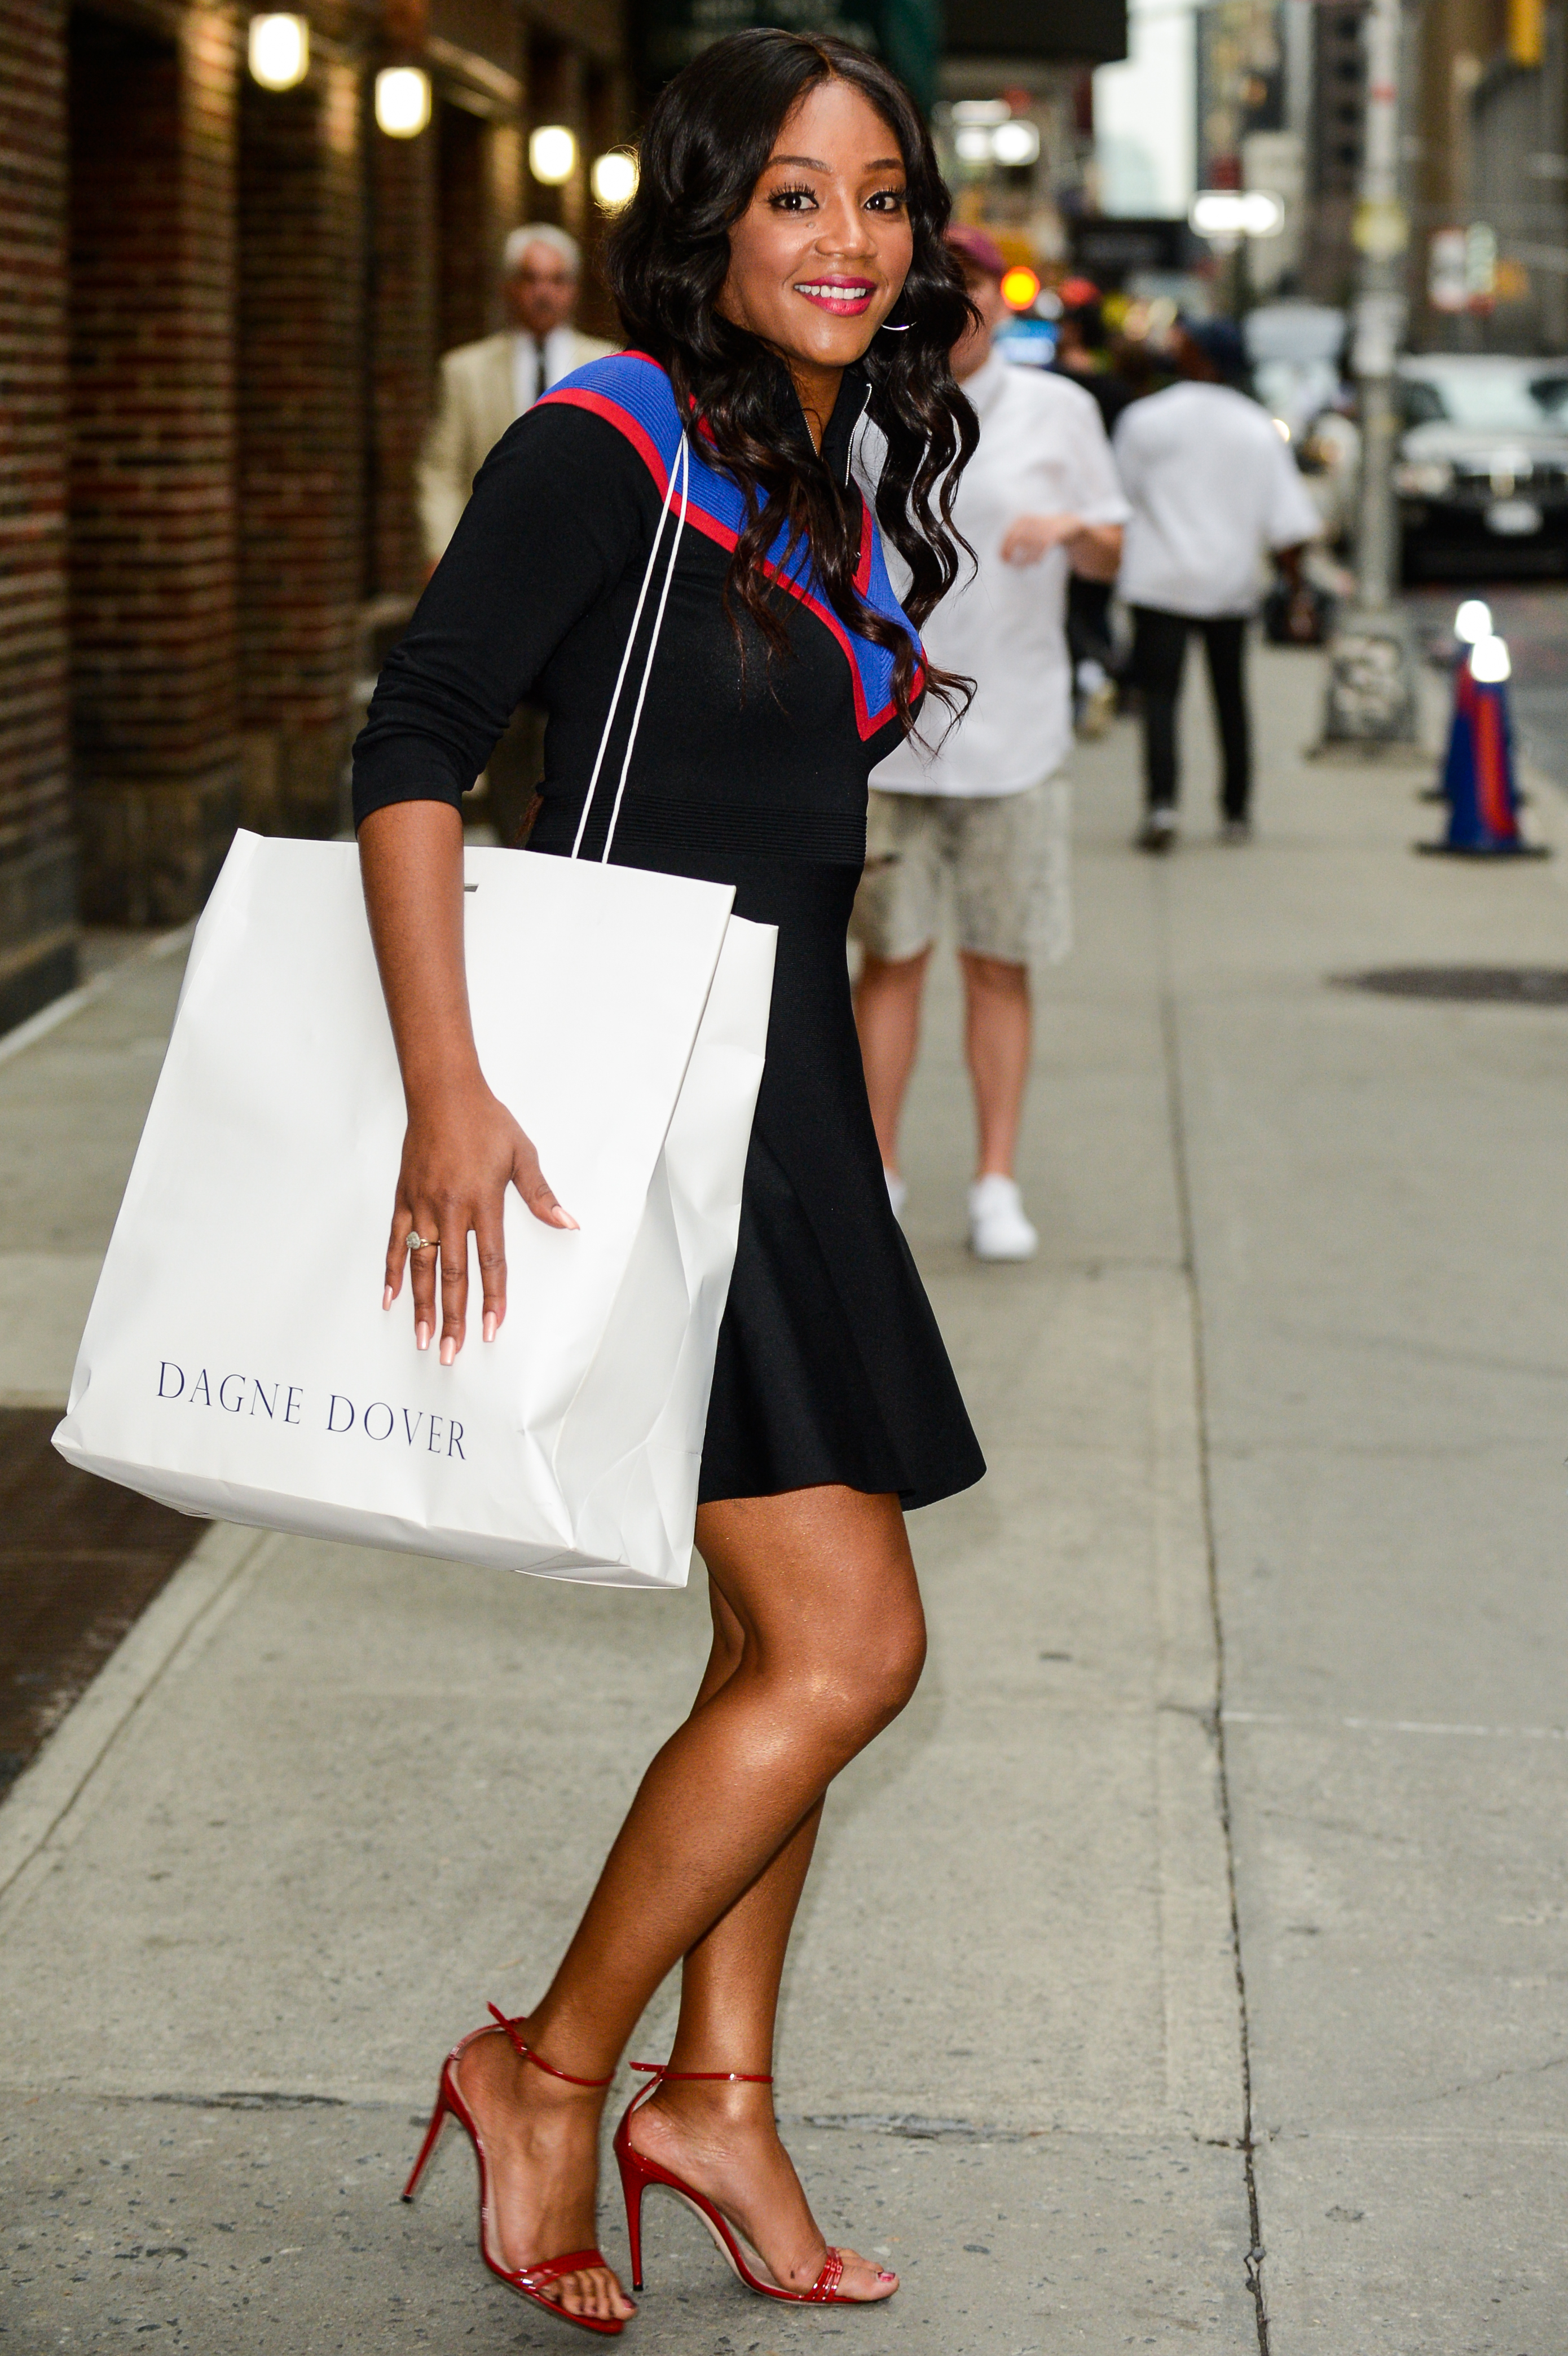 Celebrities Visit 'The Late Show With Stephen Colbert' - August 15, 2